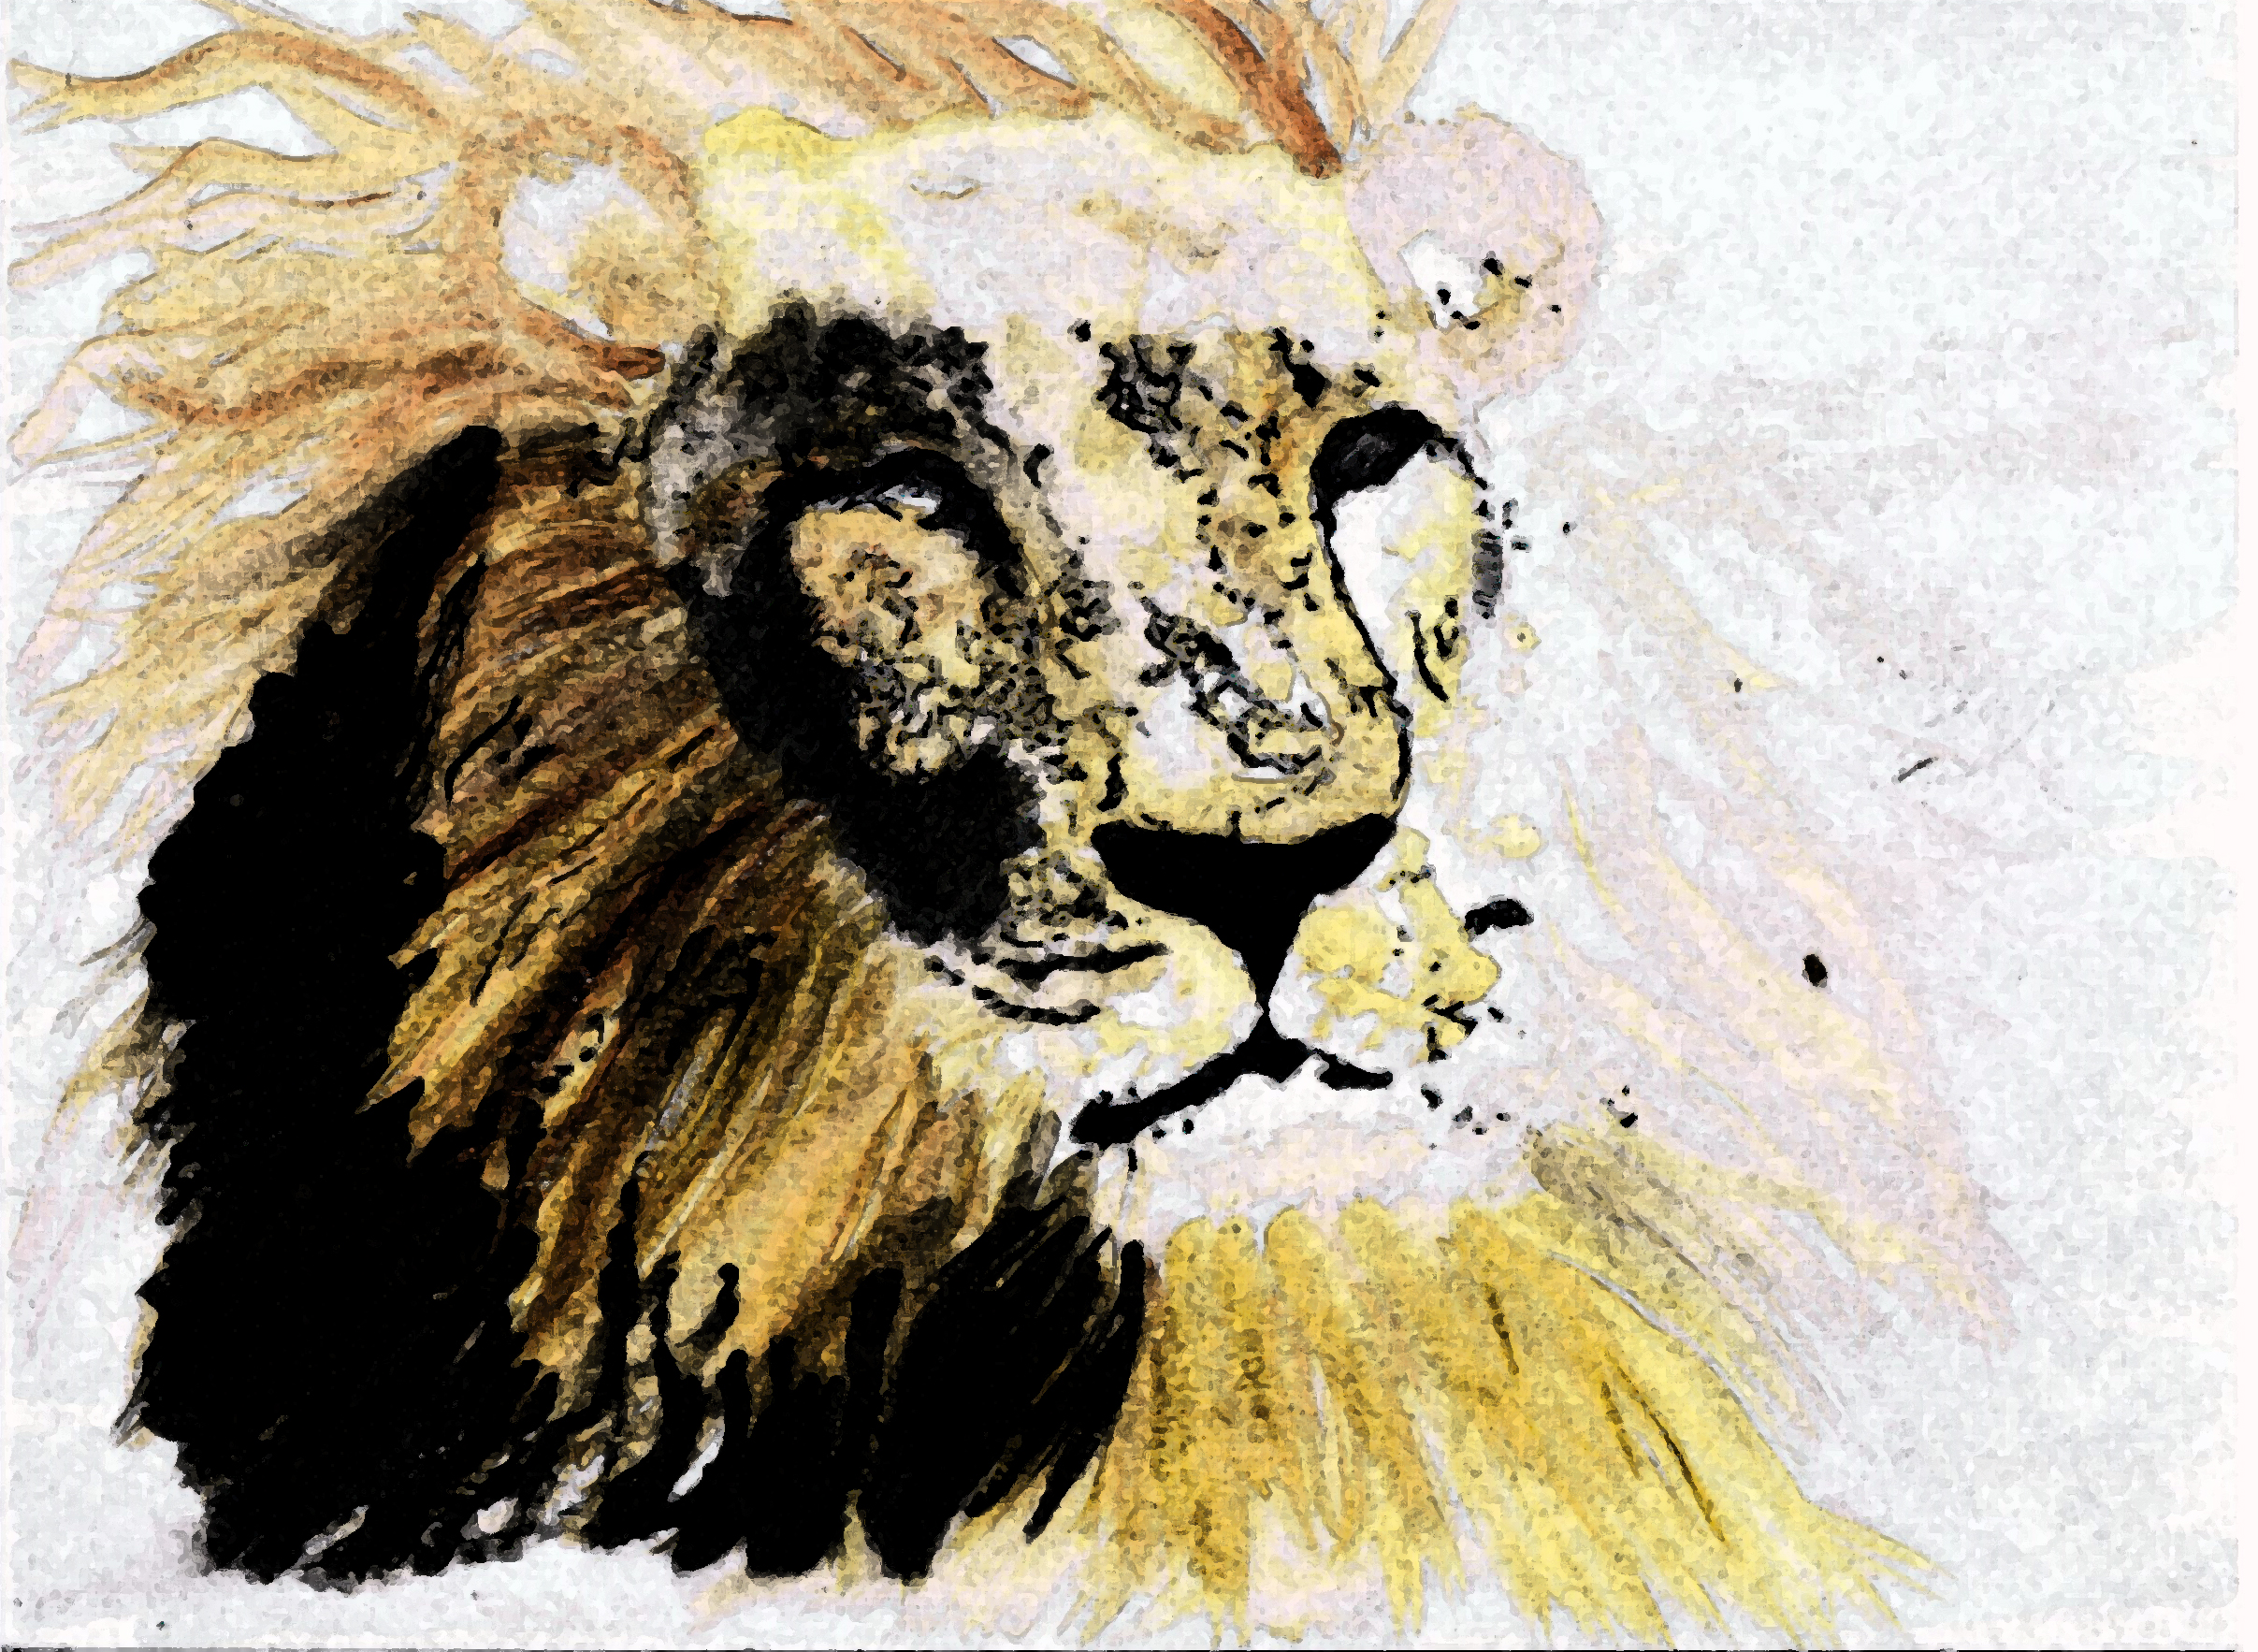 Lion, by Lahle. Watercolor, felt tip, ink pen.